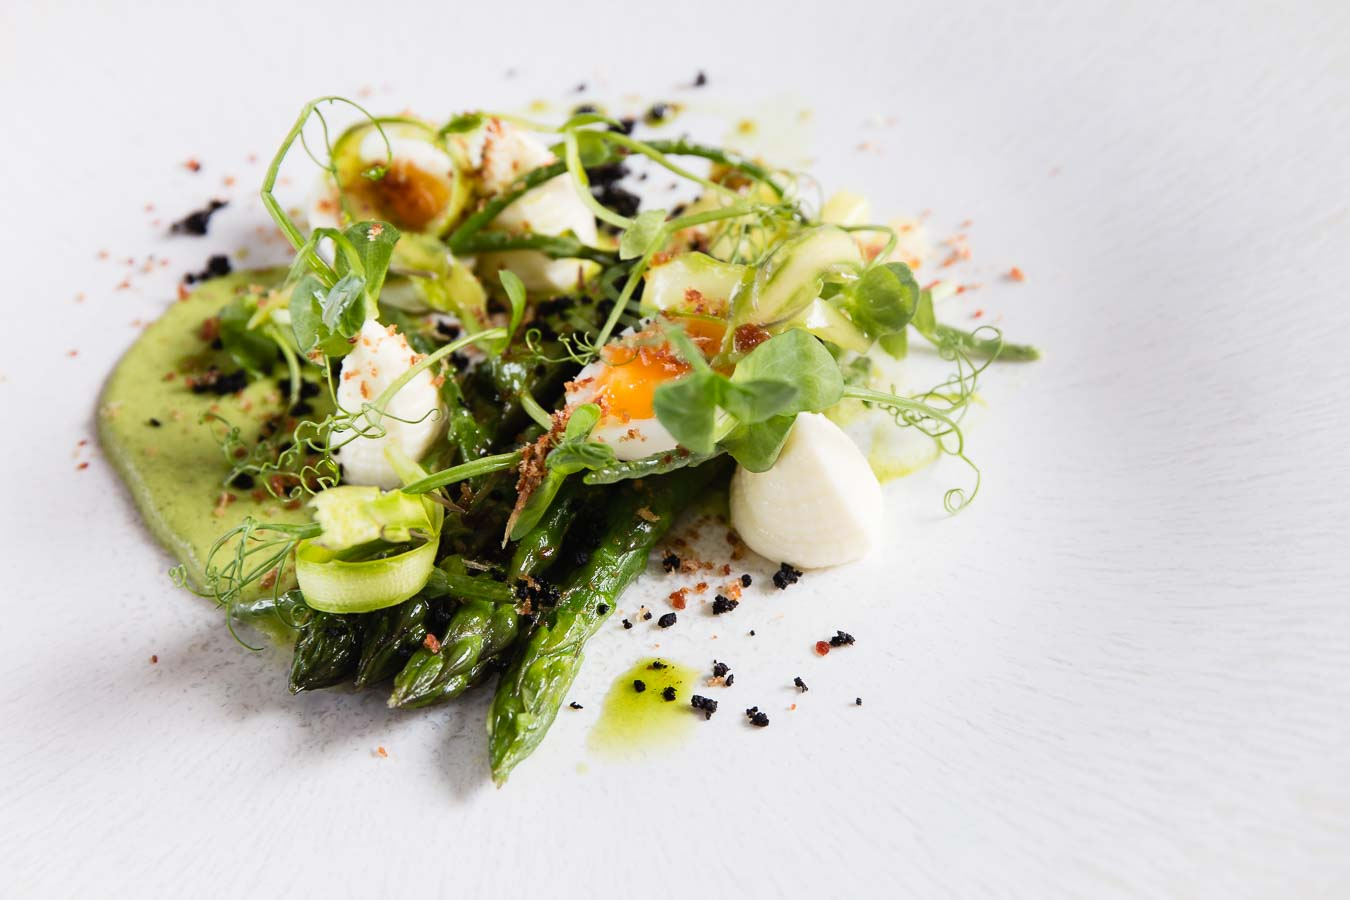 A fine dining plate of shaved and whole asparagus with an egg, pea sprouts and a pea foam, on a white textured plate